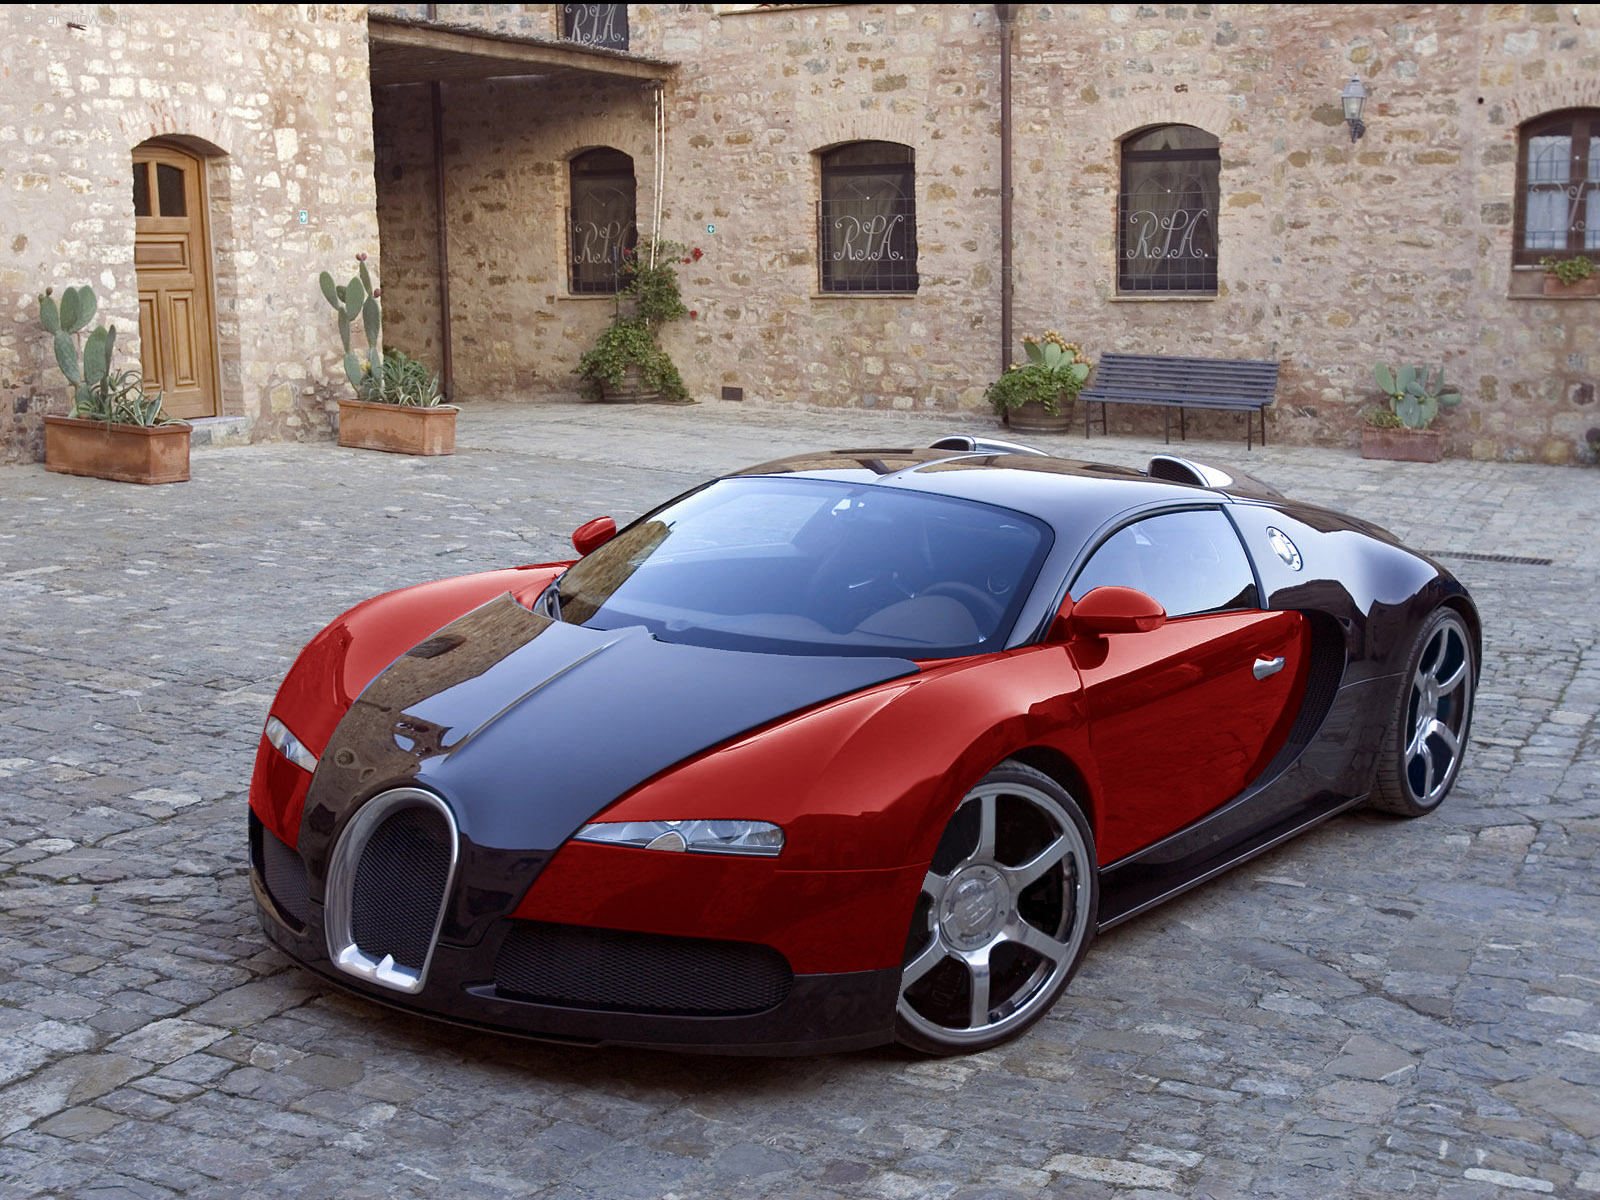 Image Result For Wallpaper Images Of Sport Cars